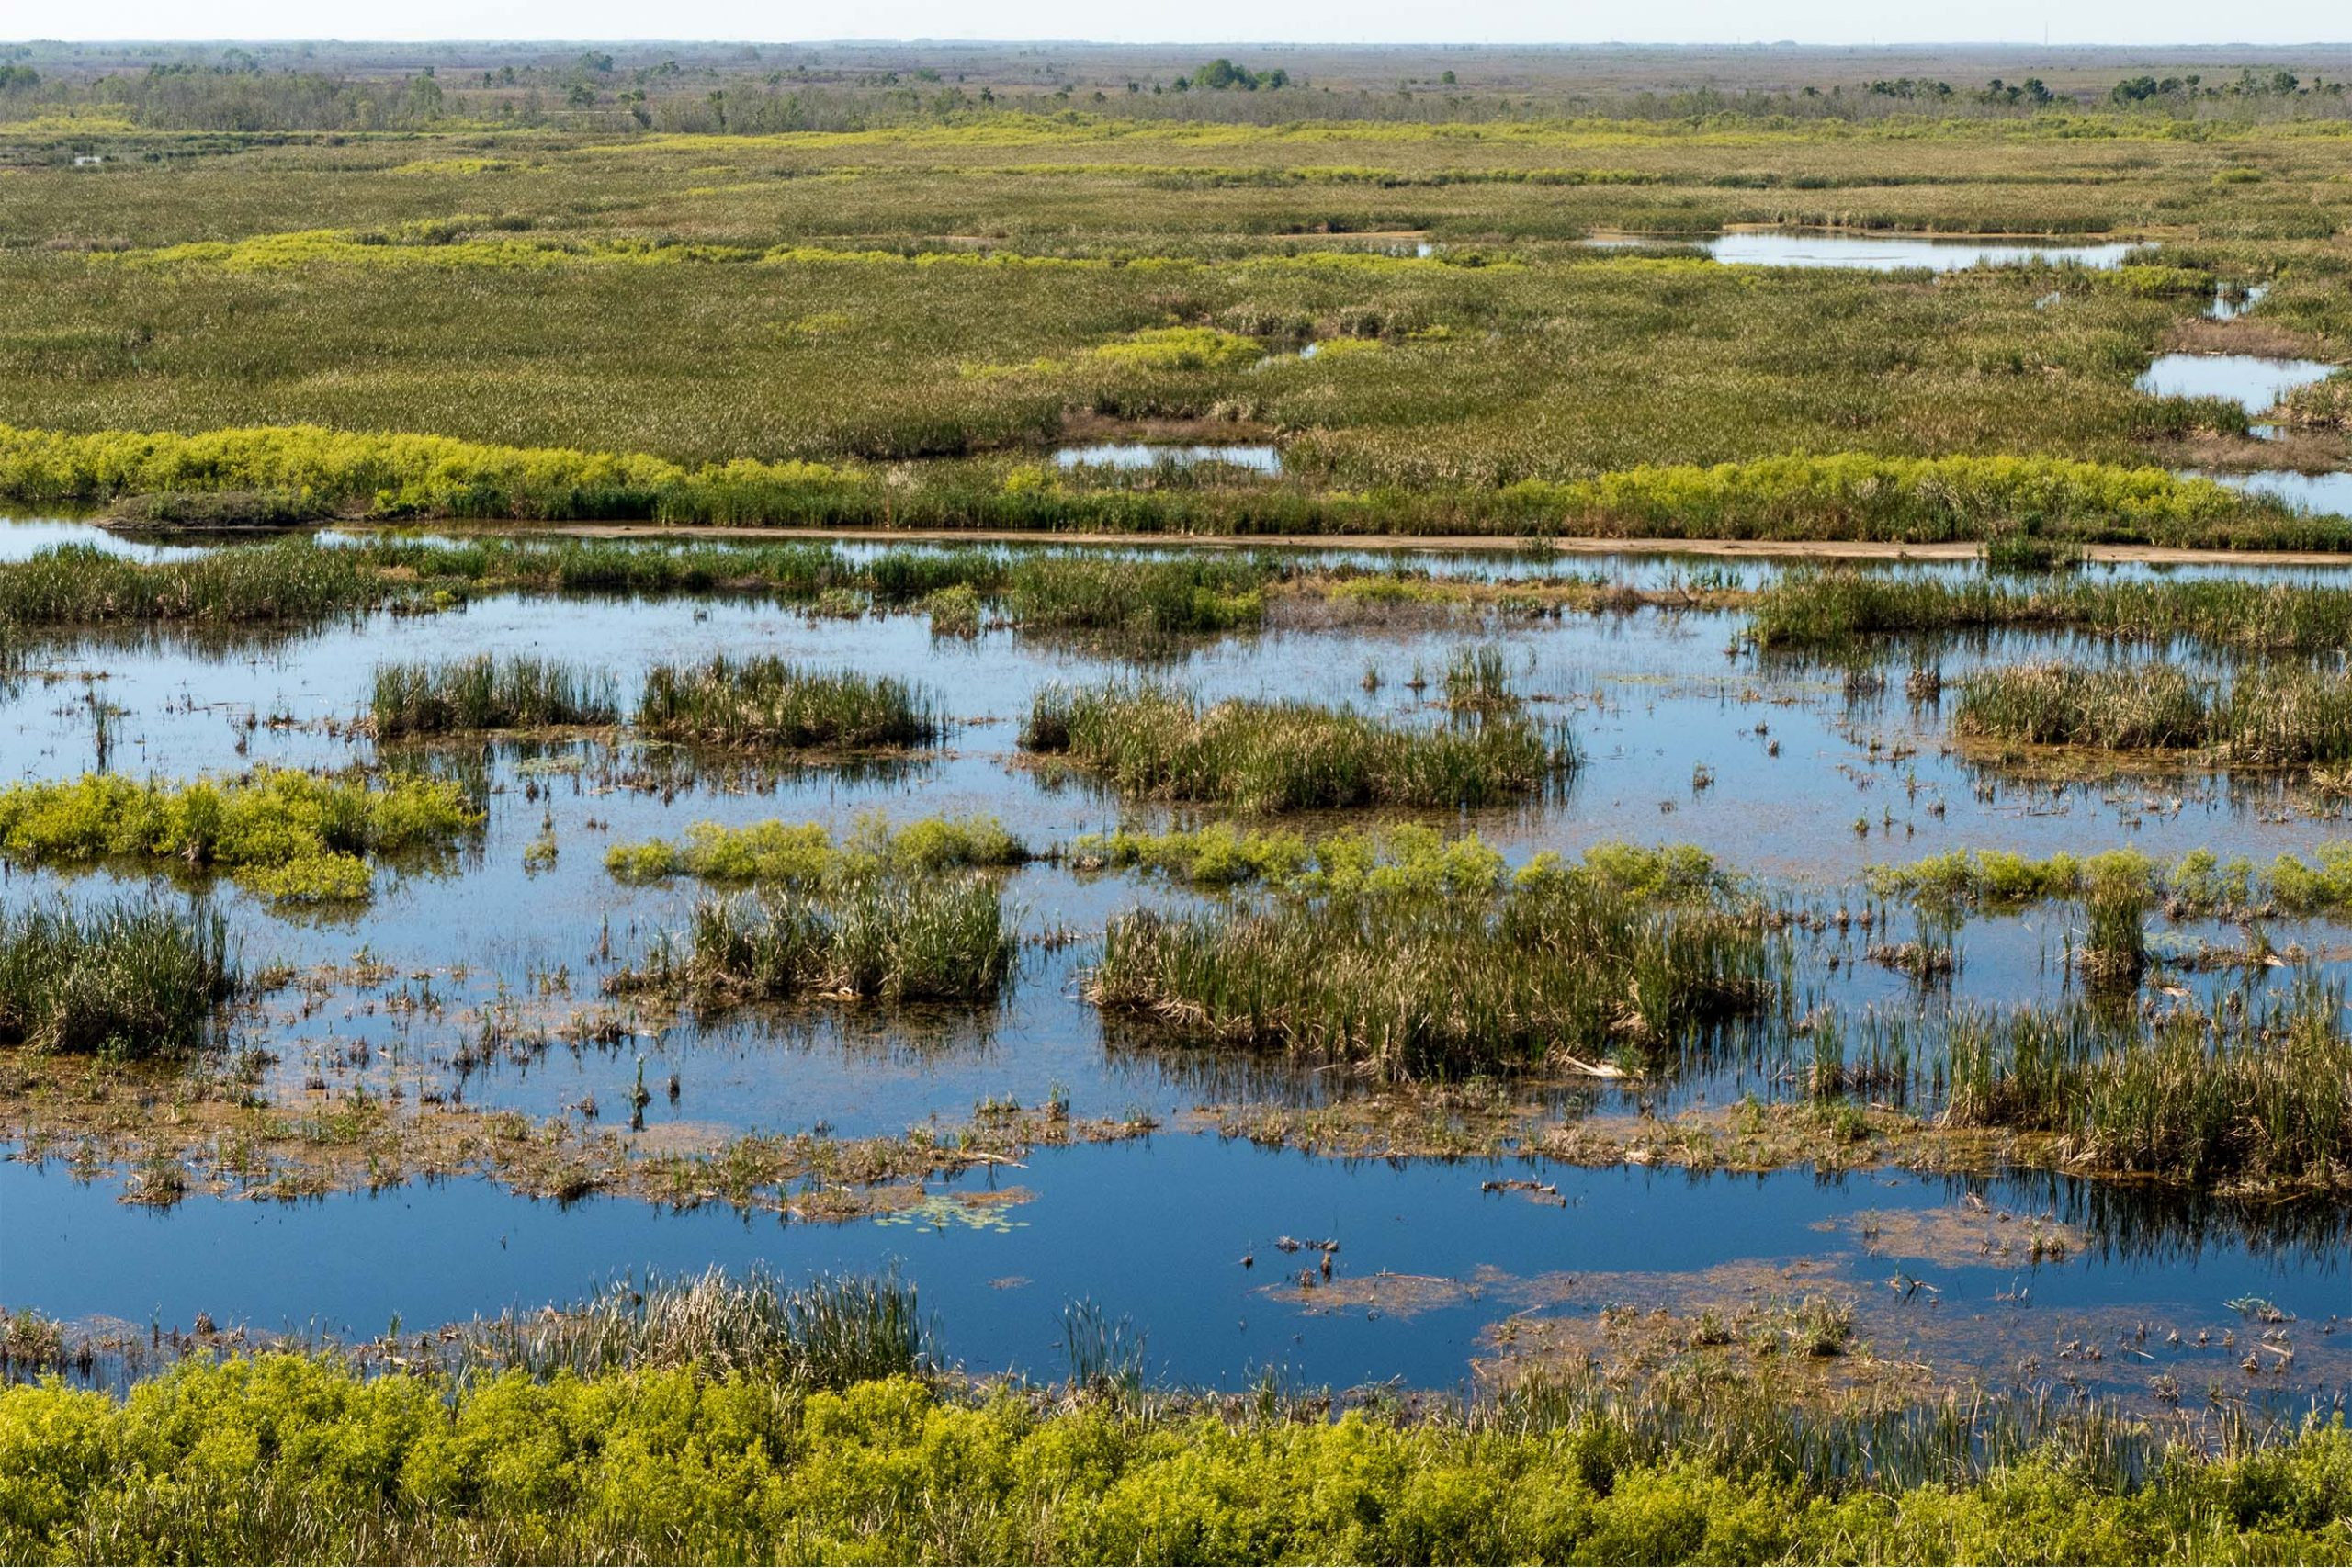 Aerial view of a marshland